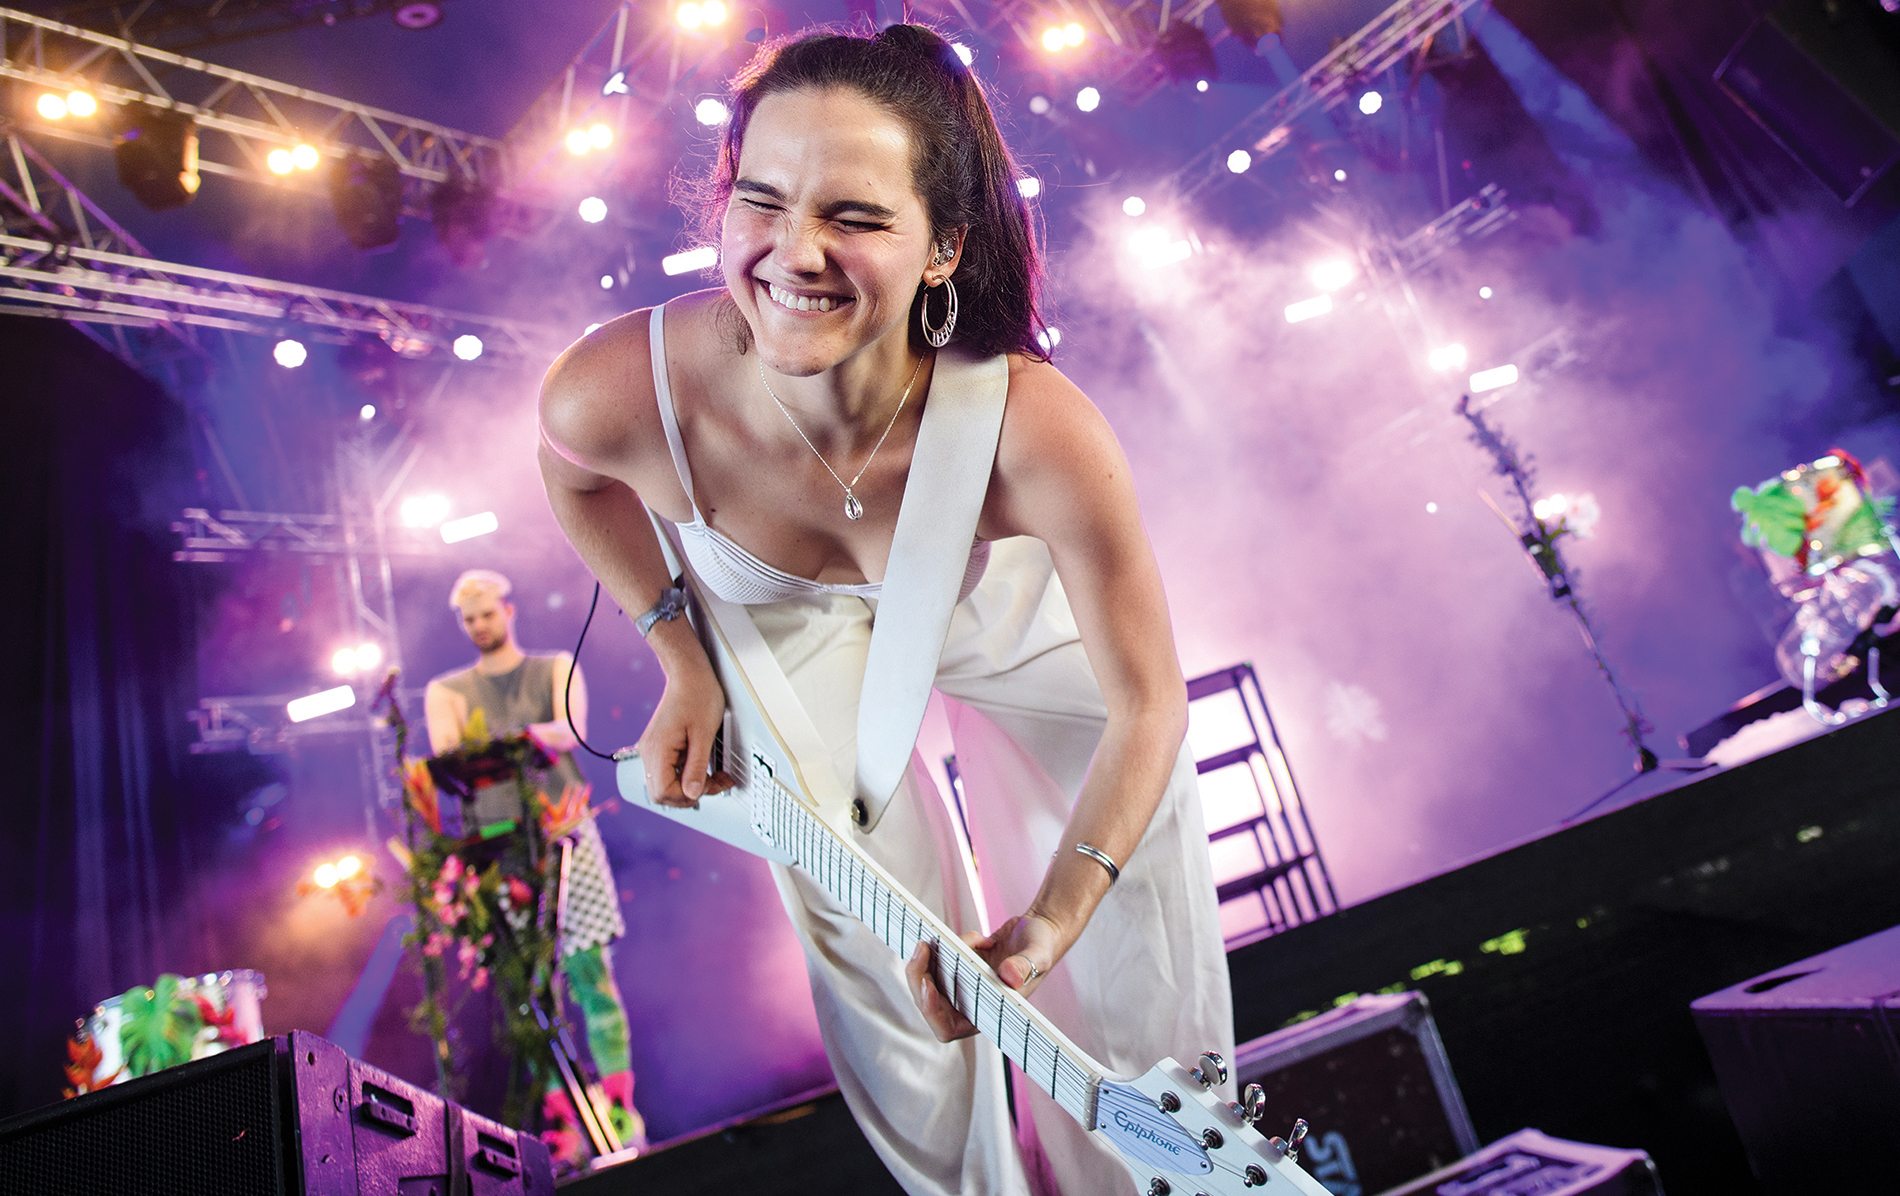 Photograph of the band Sofi Tukker performing